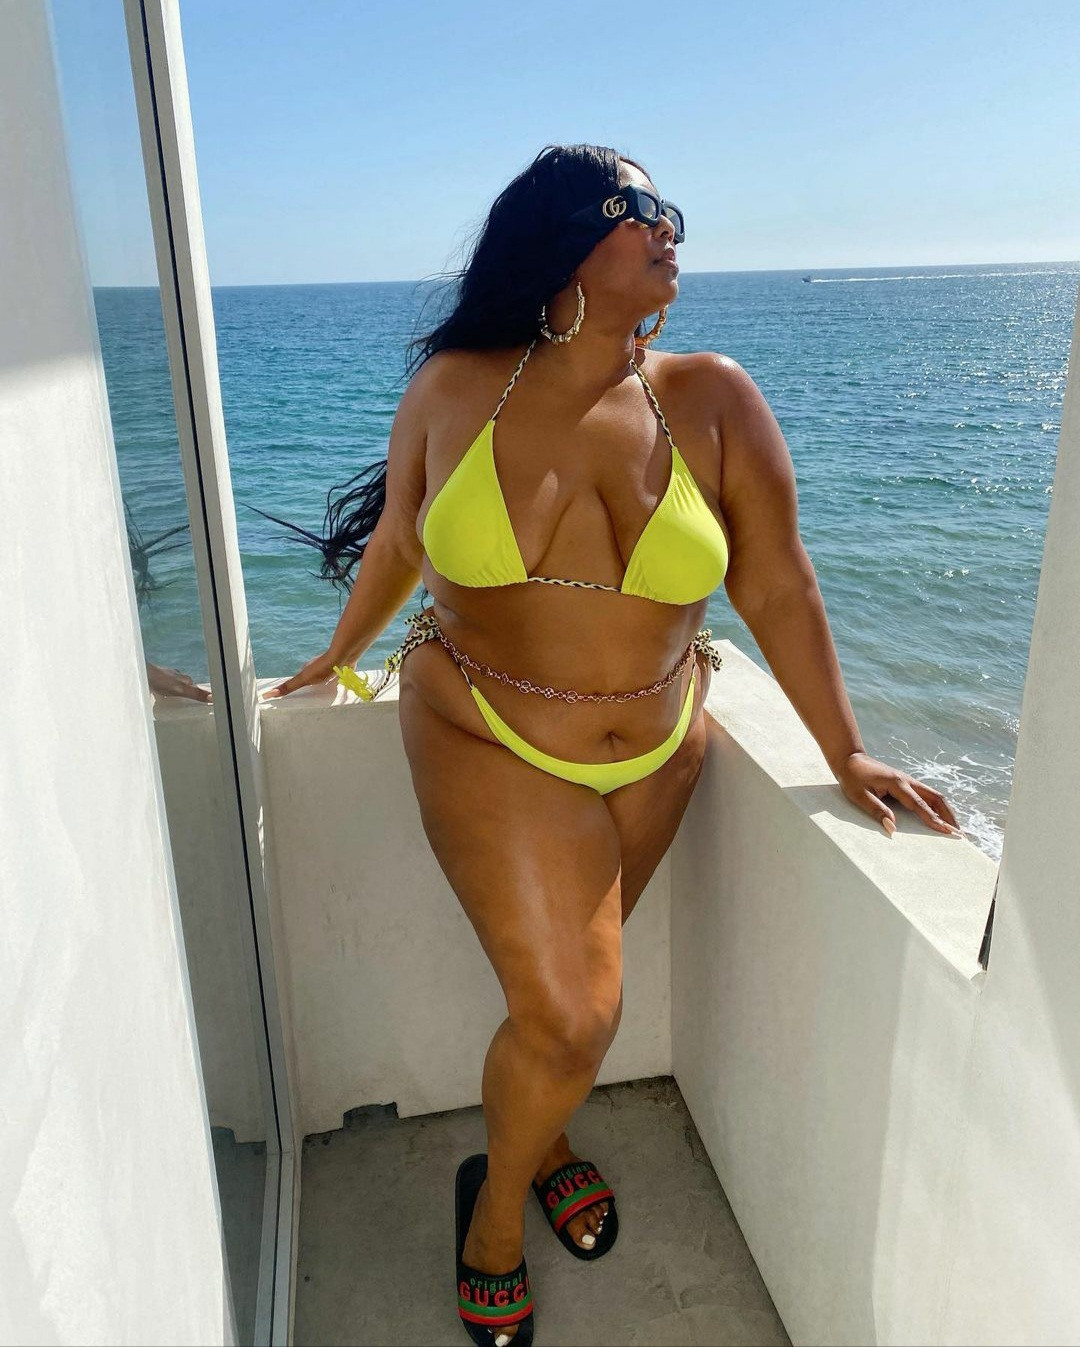 Lizzo shows off her curves in skimpy bikini (photos)